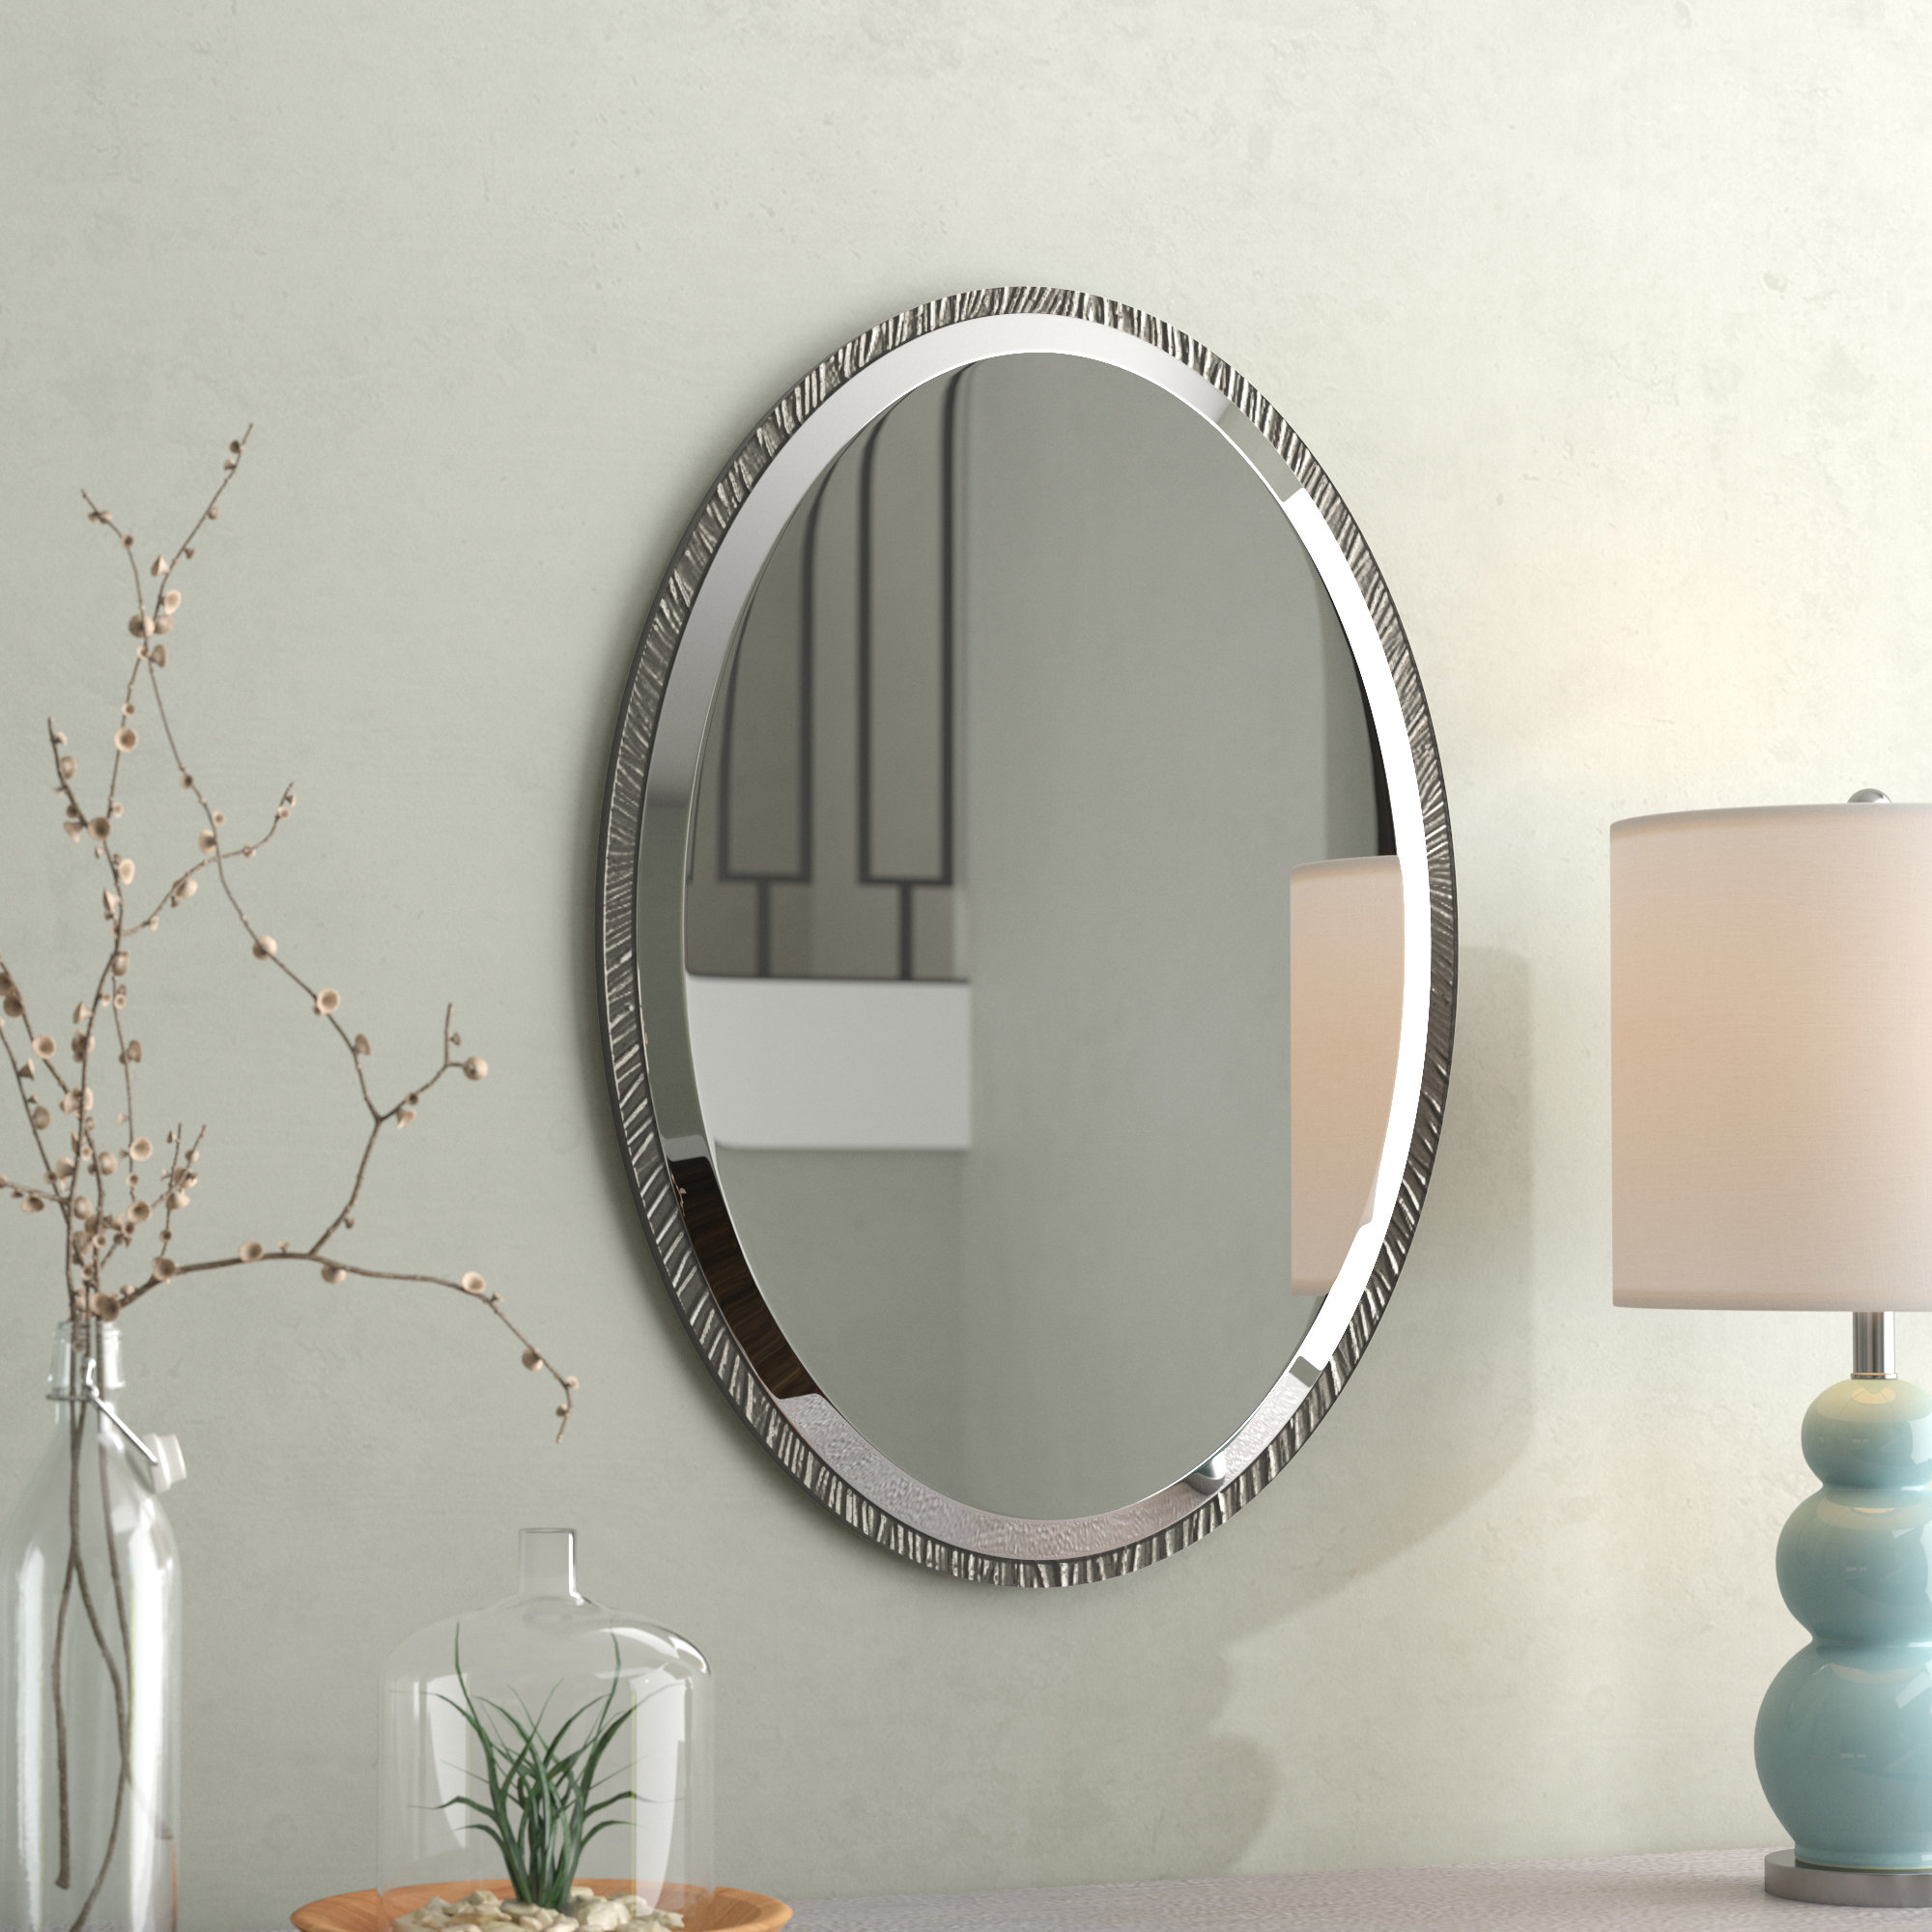 Brayden Studio Oval Polished Nickel Wall Mirror & Reviews For Glen View Beaded Oval Traditional Accent Mirrors (View 8 of 20)